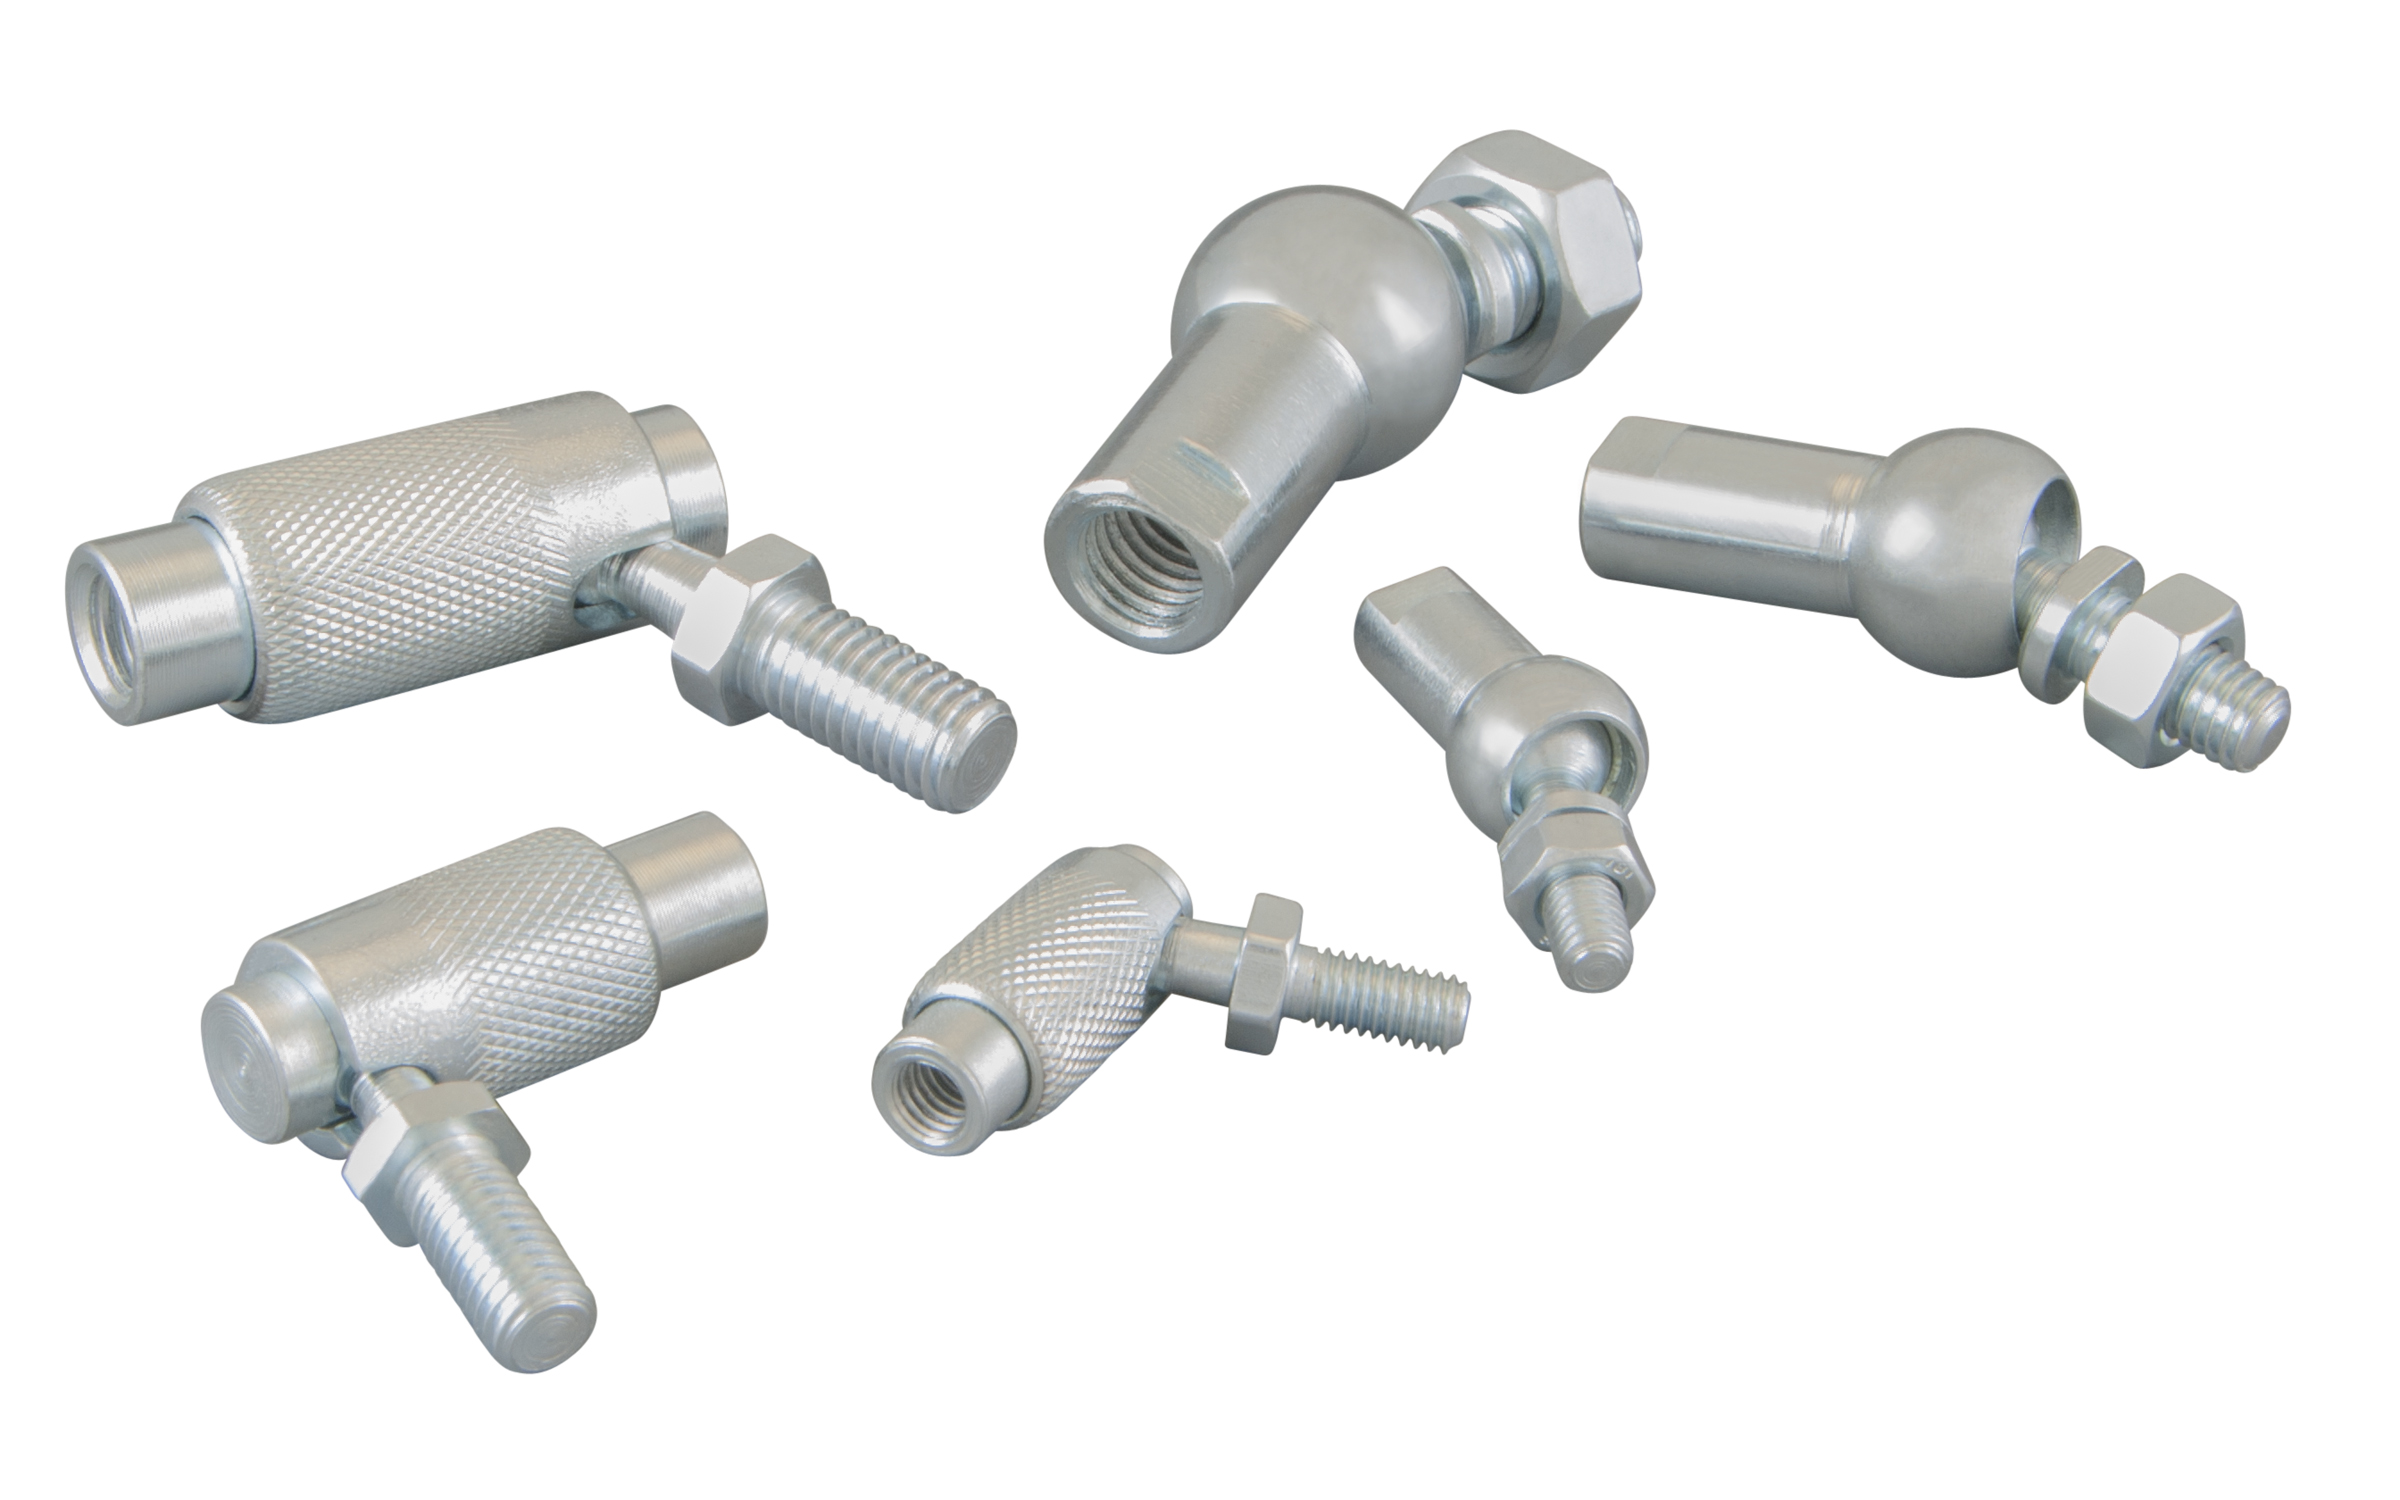 WDS ball joints bring flexibility to wide range of systems and structures